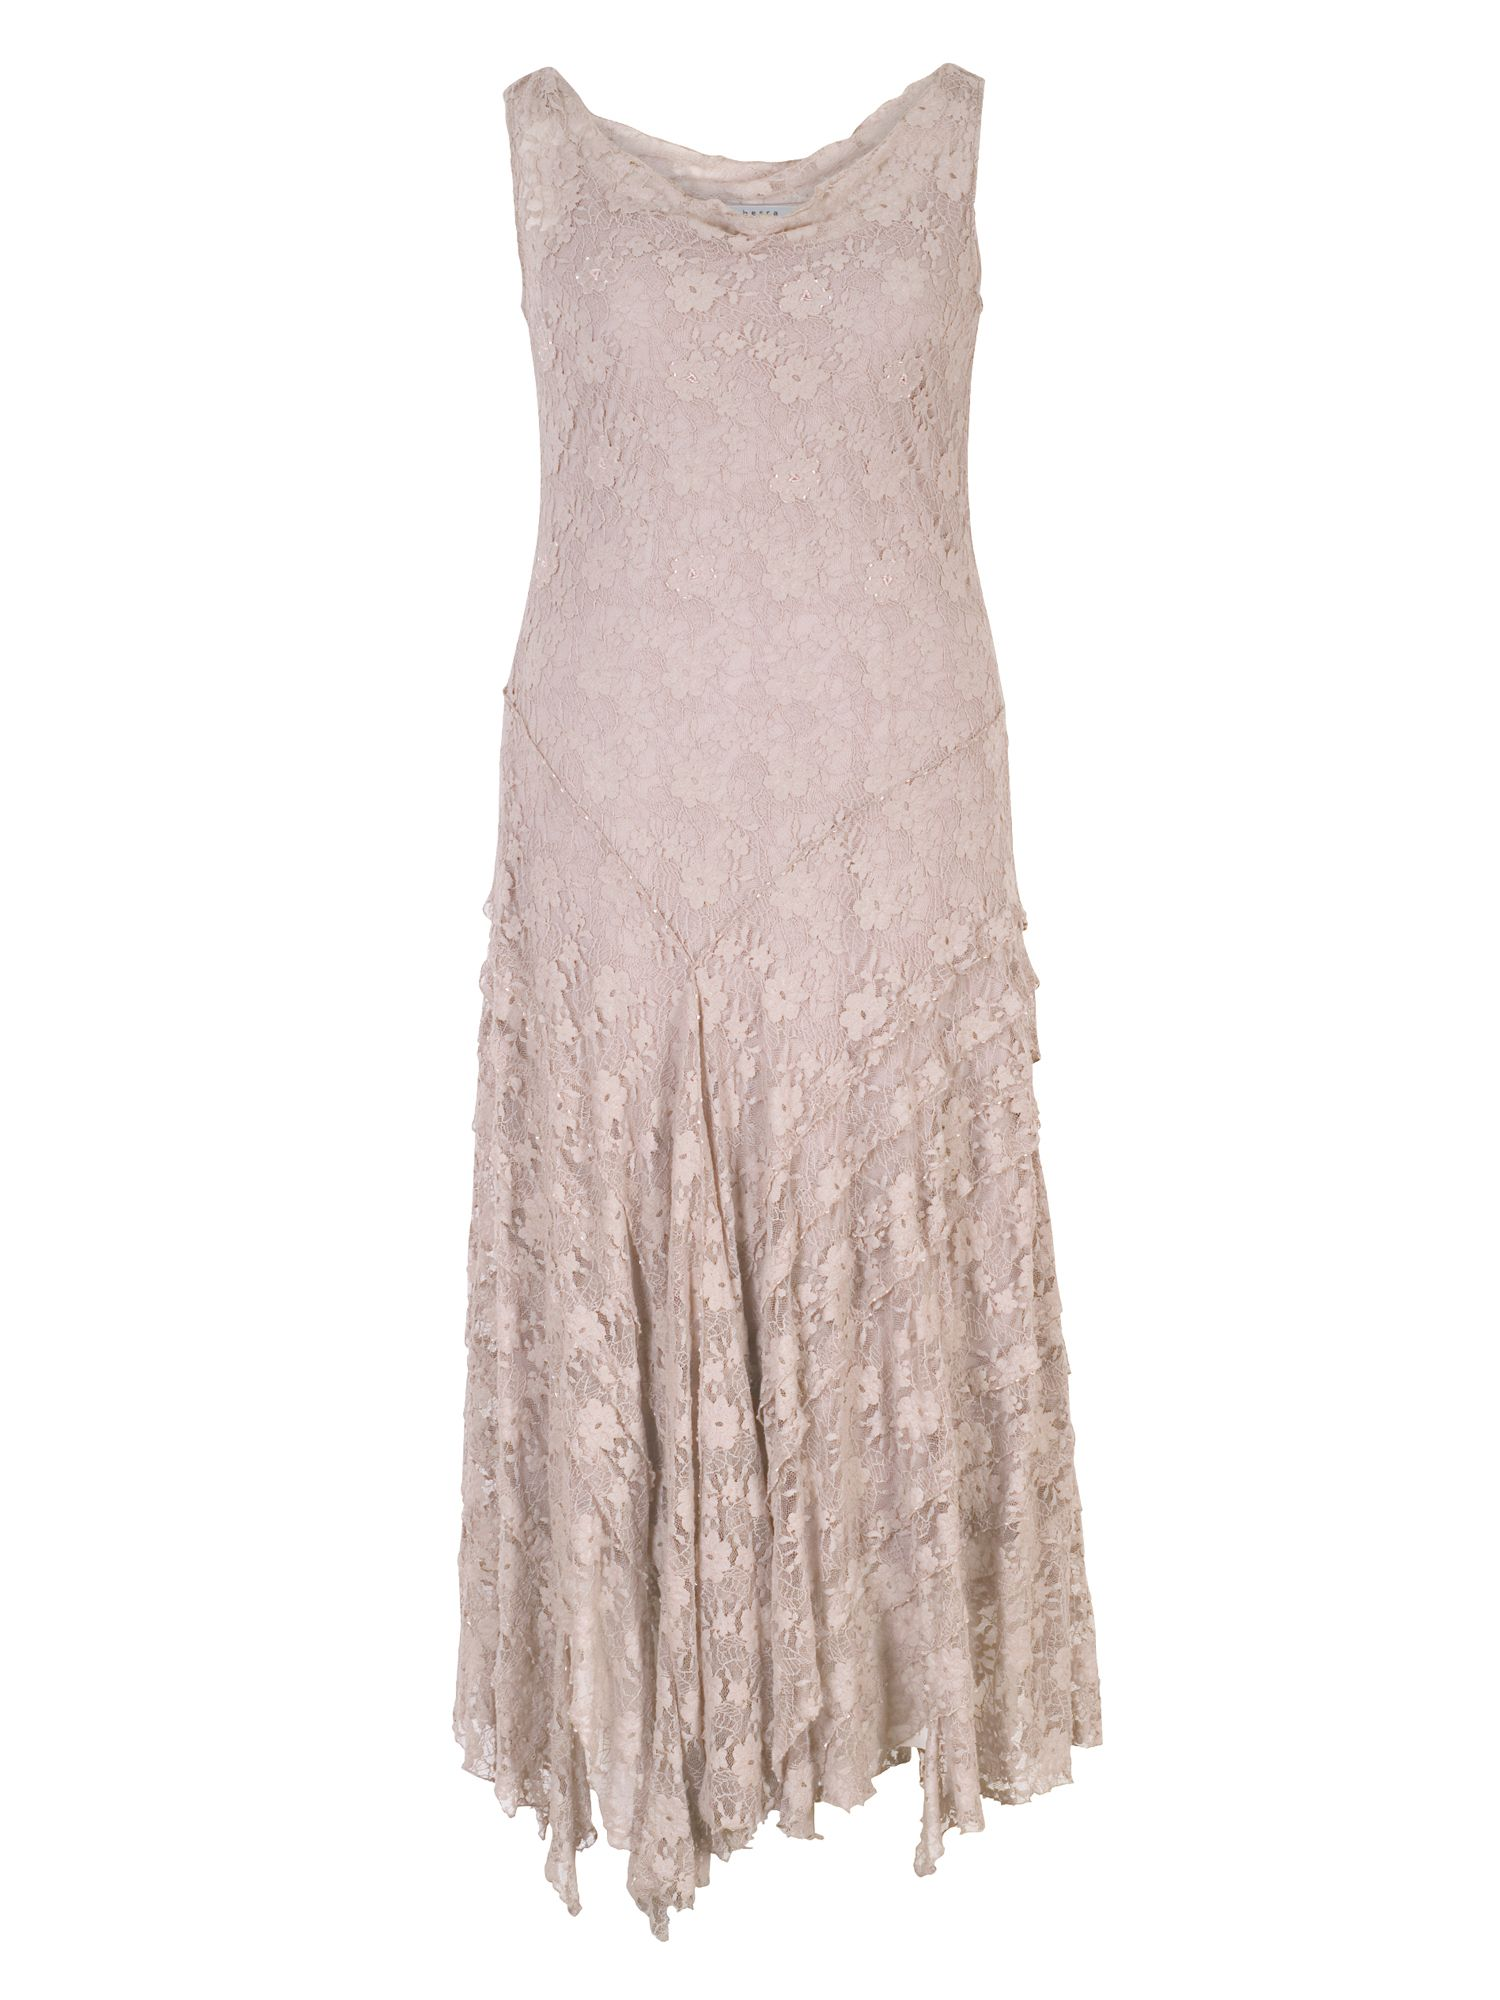 Chesca Stretch Lace Cinderella Bead Trim Dress, Mink